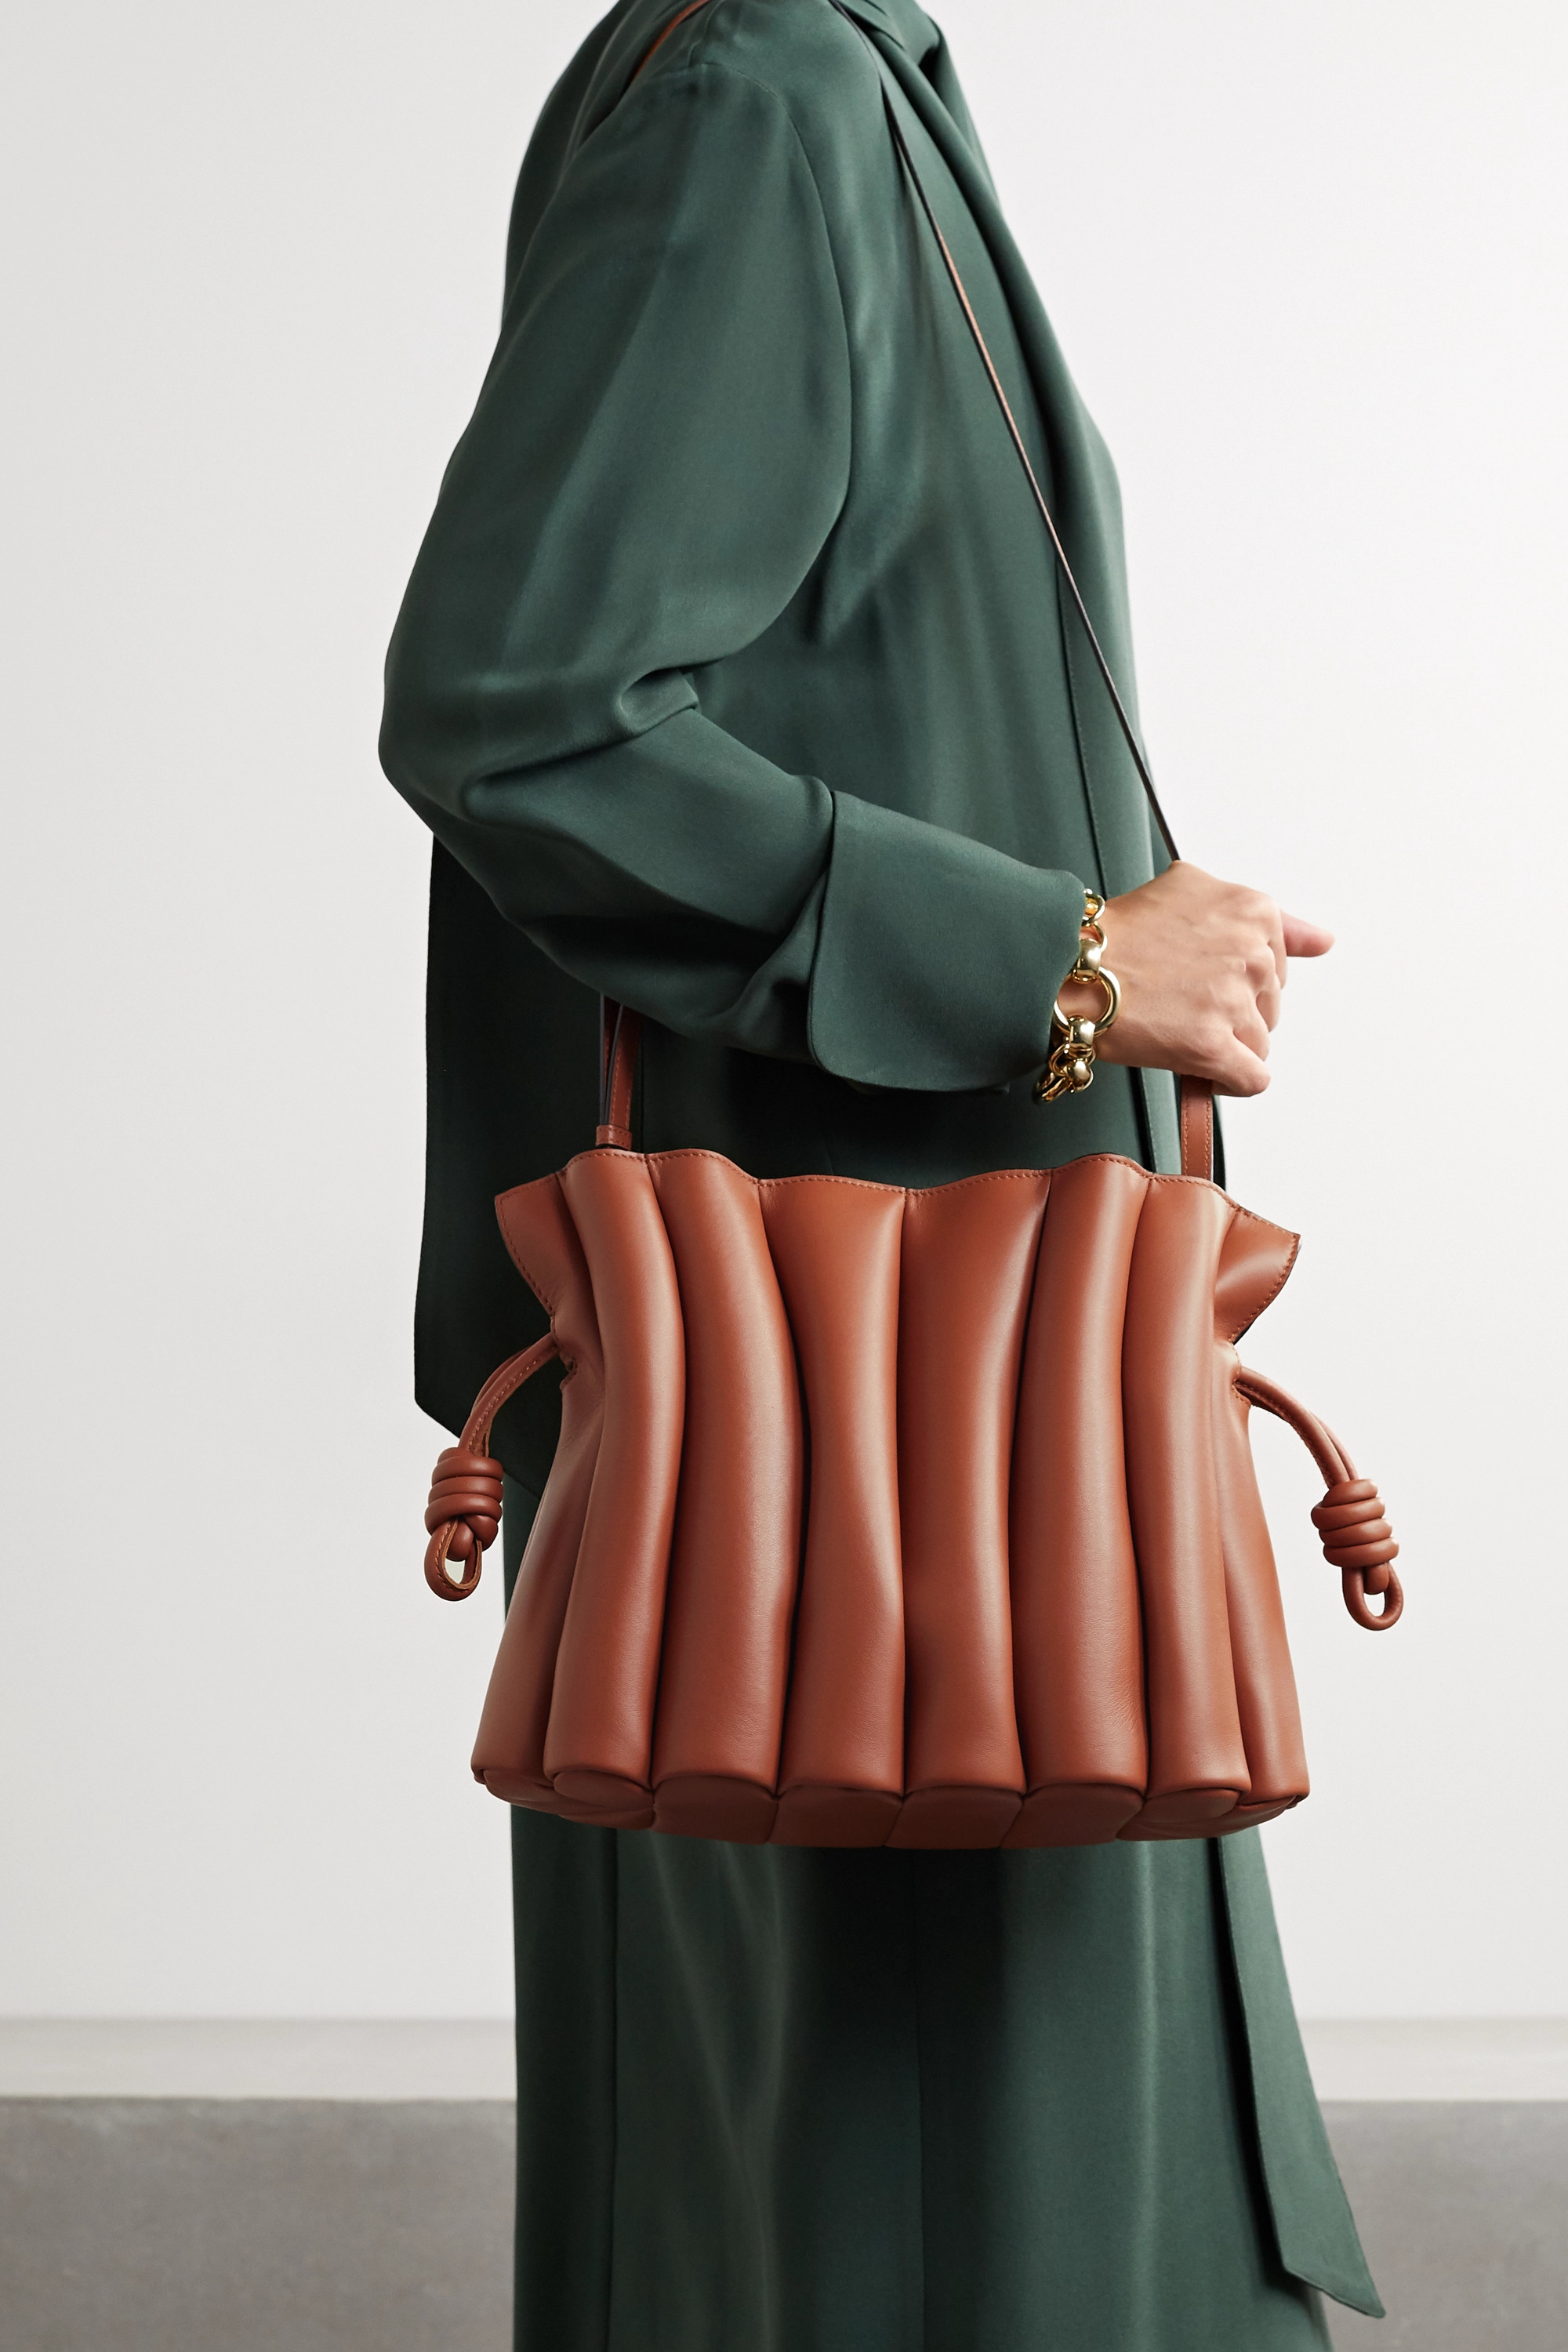 Loewe Flamenco Ondas pleated leather clutch